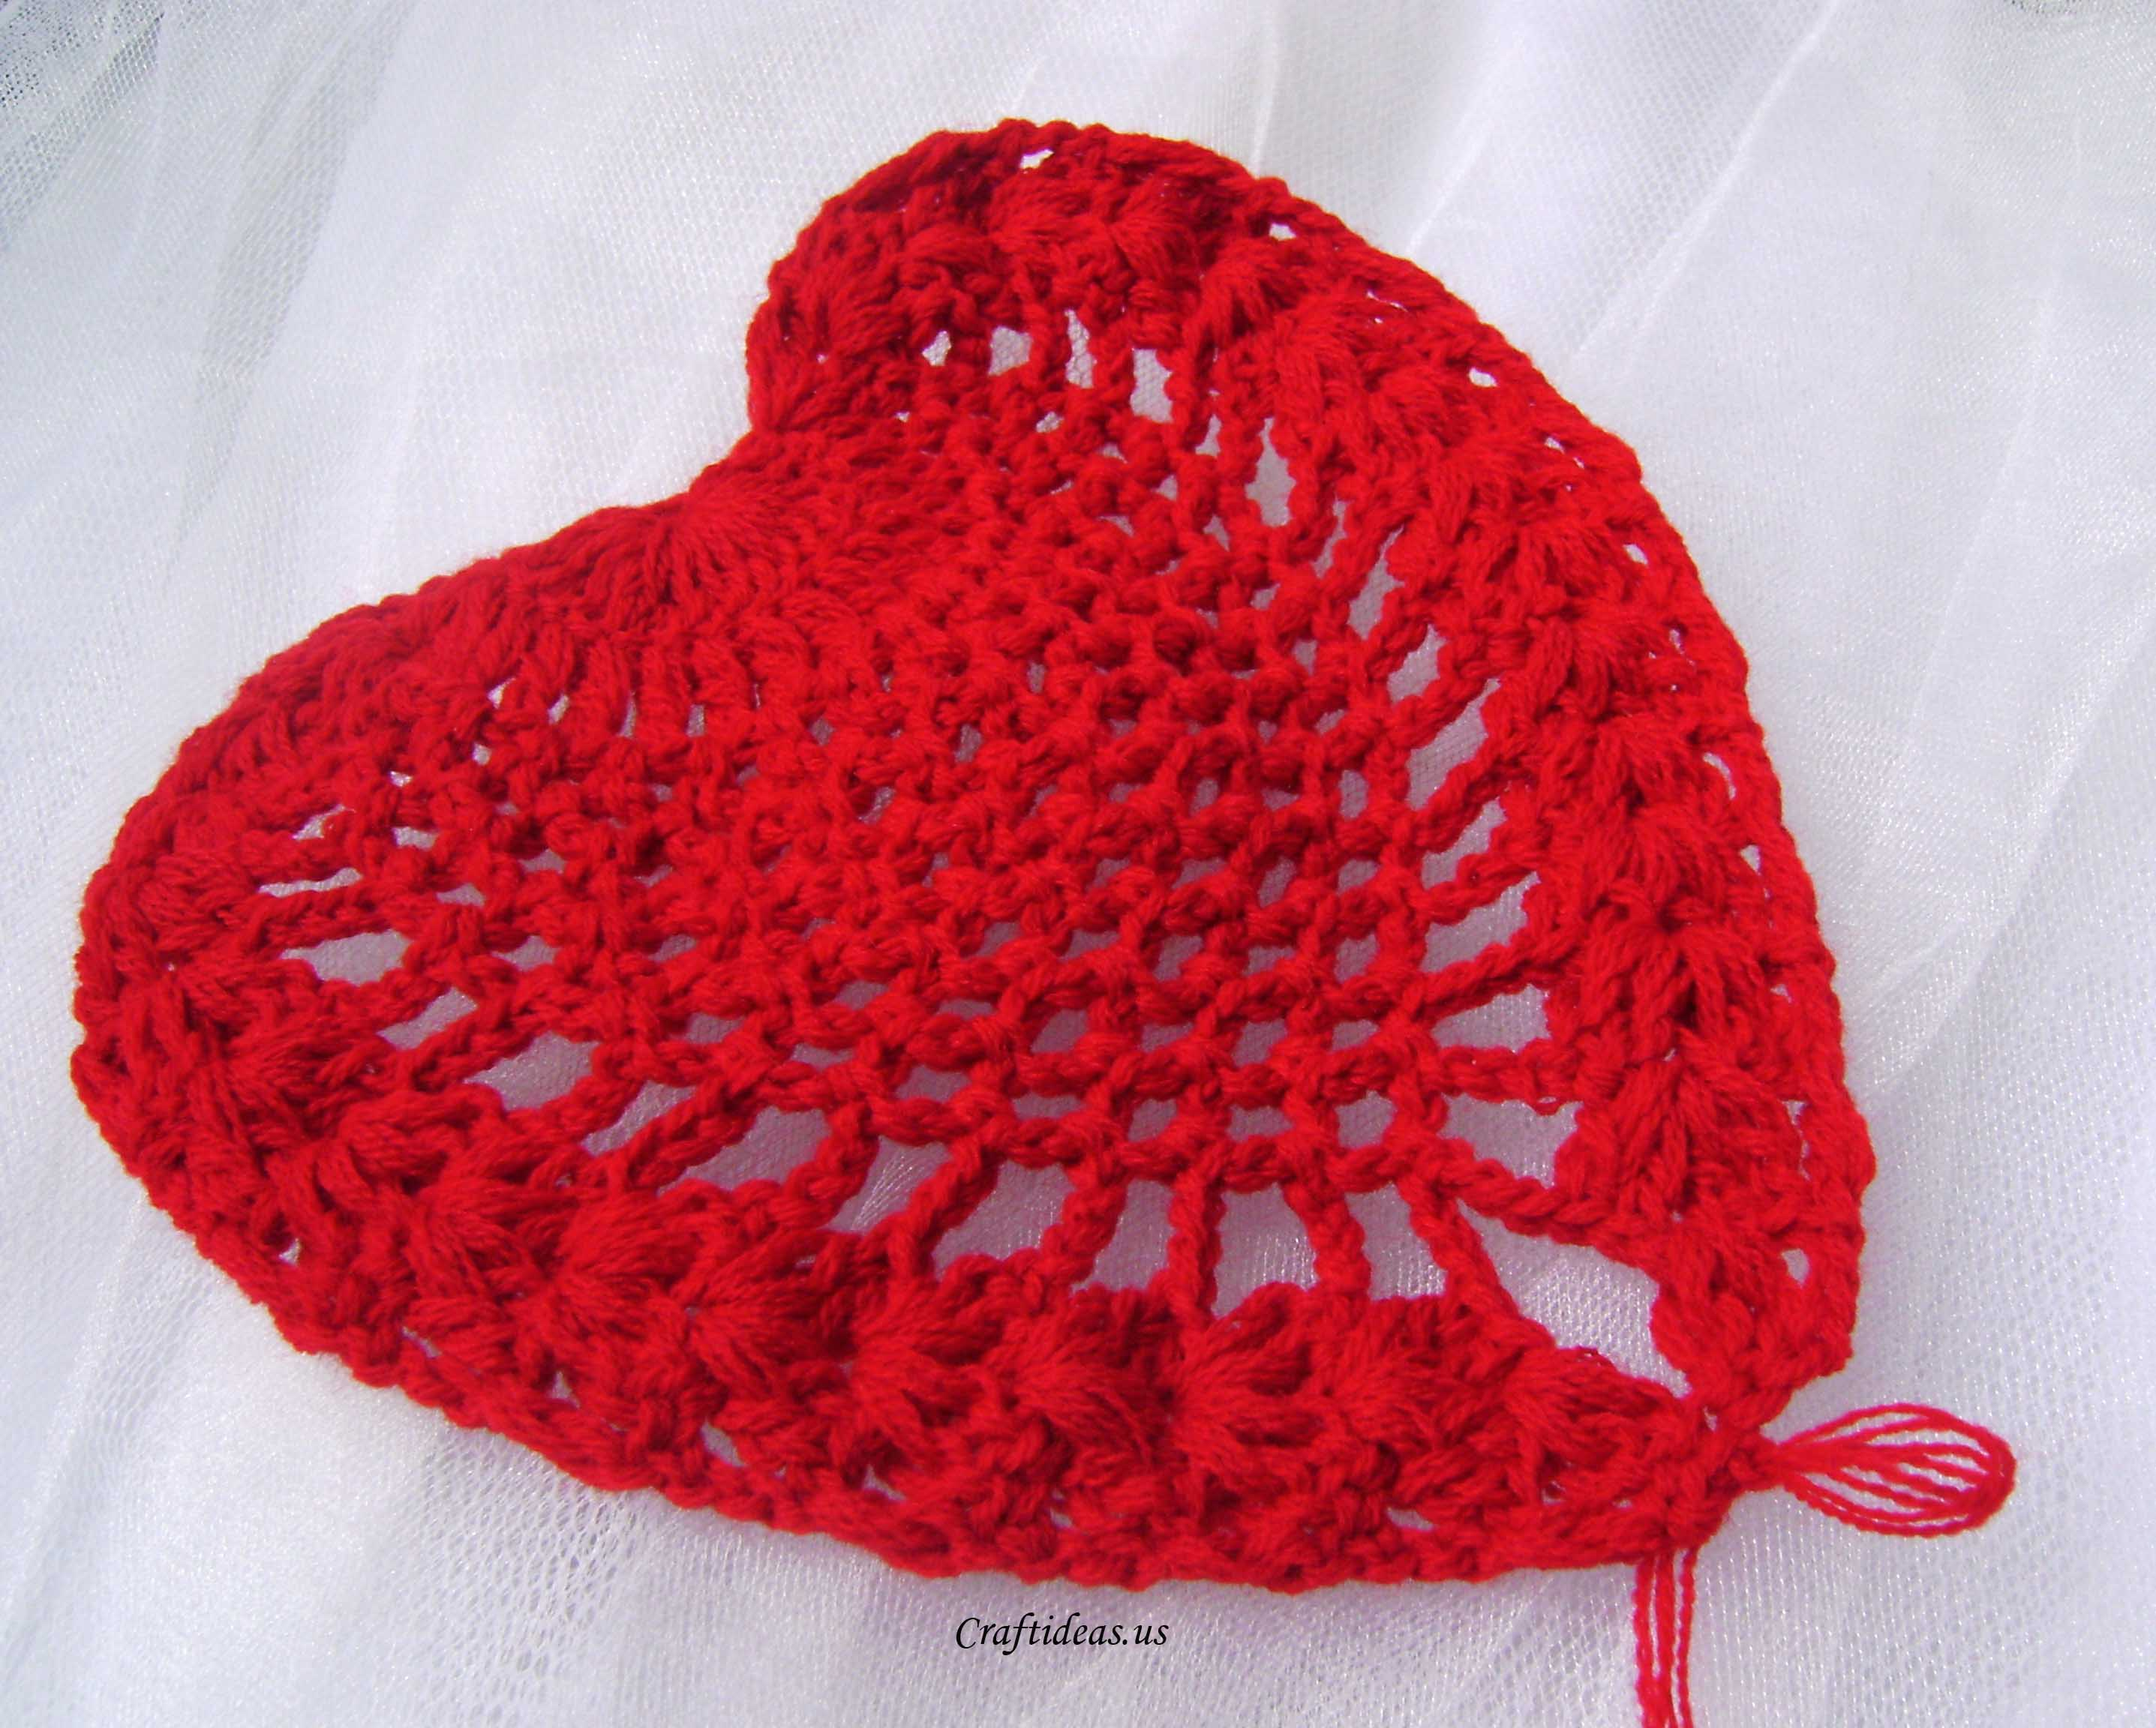 Crochet Heart : Valentine craft ideas: crochet heart scarf and heart tablecloths ...